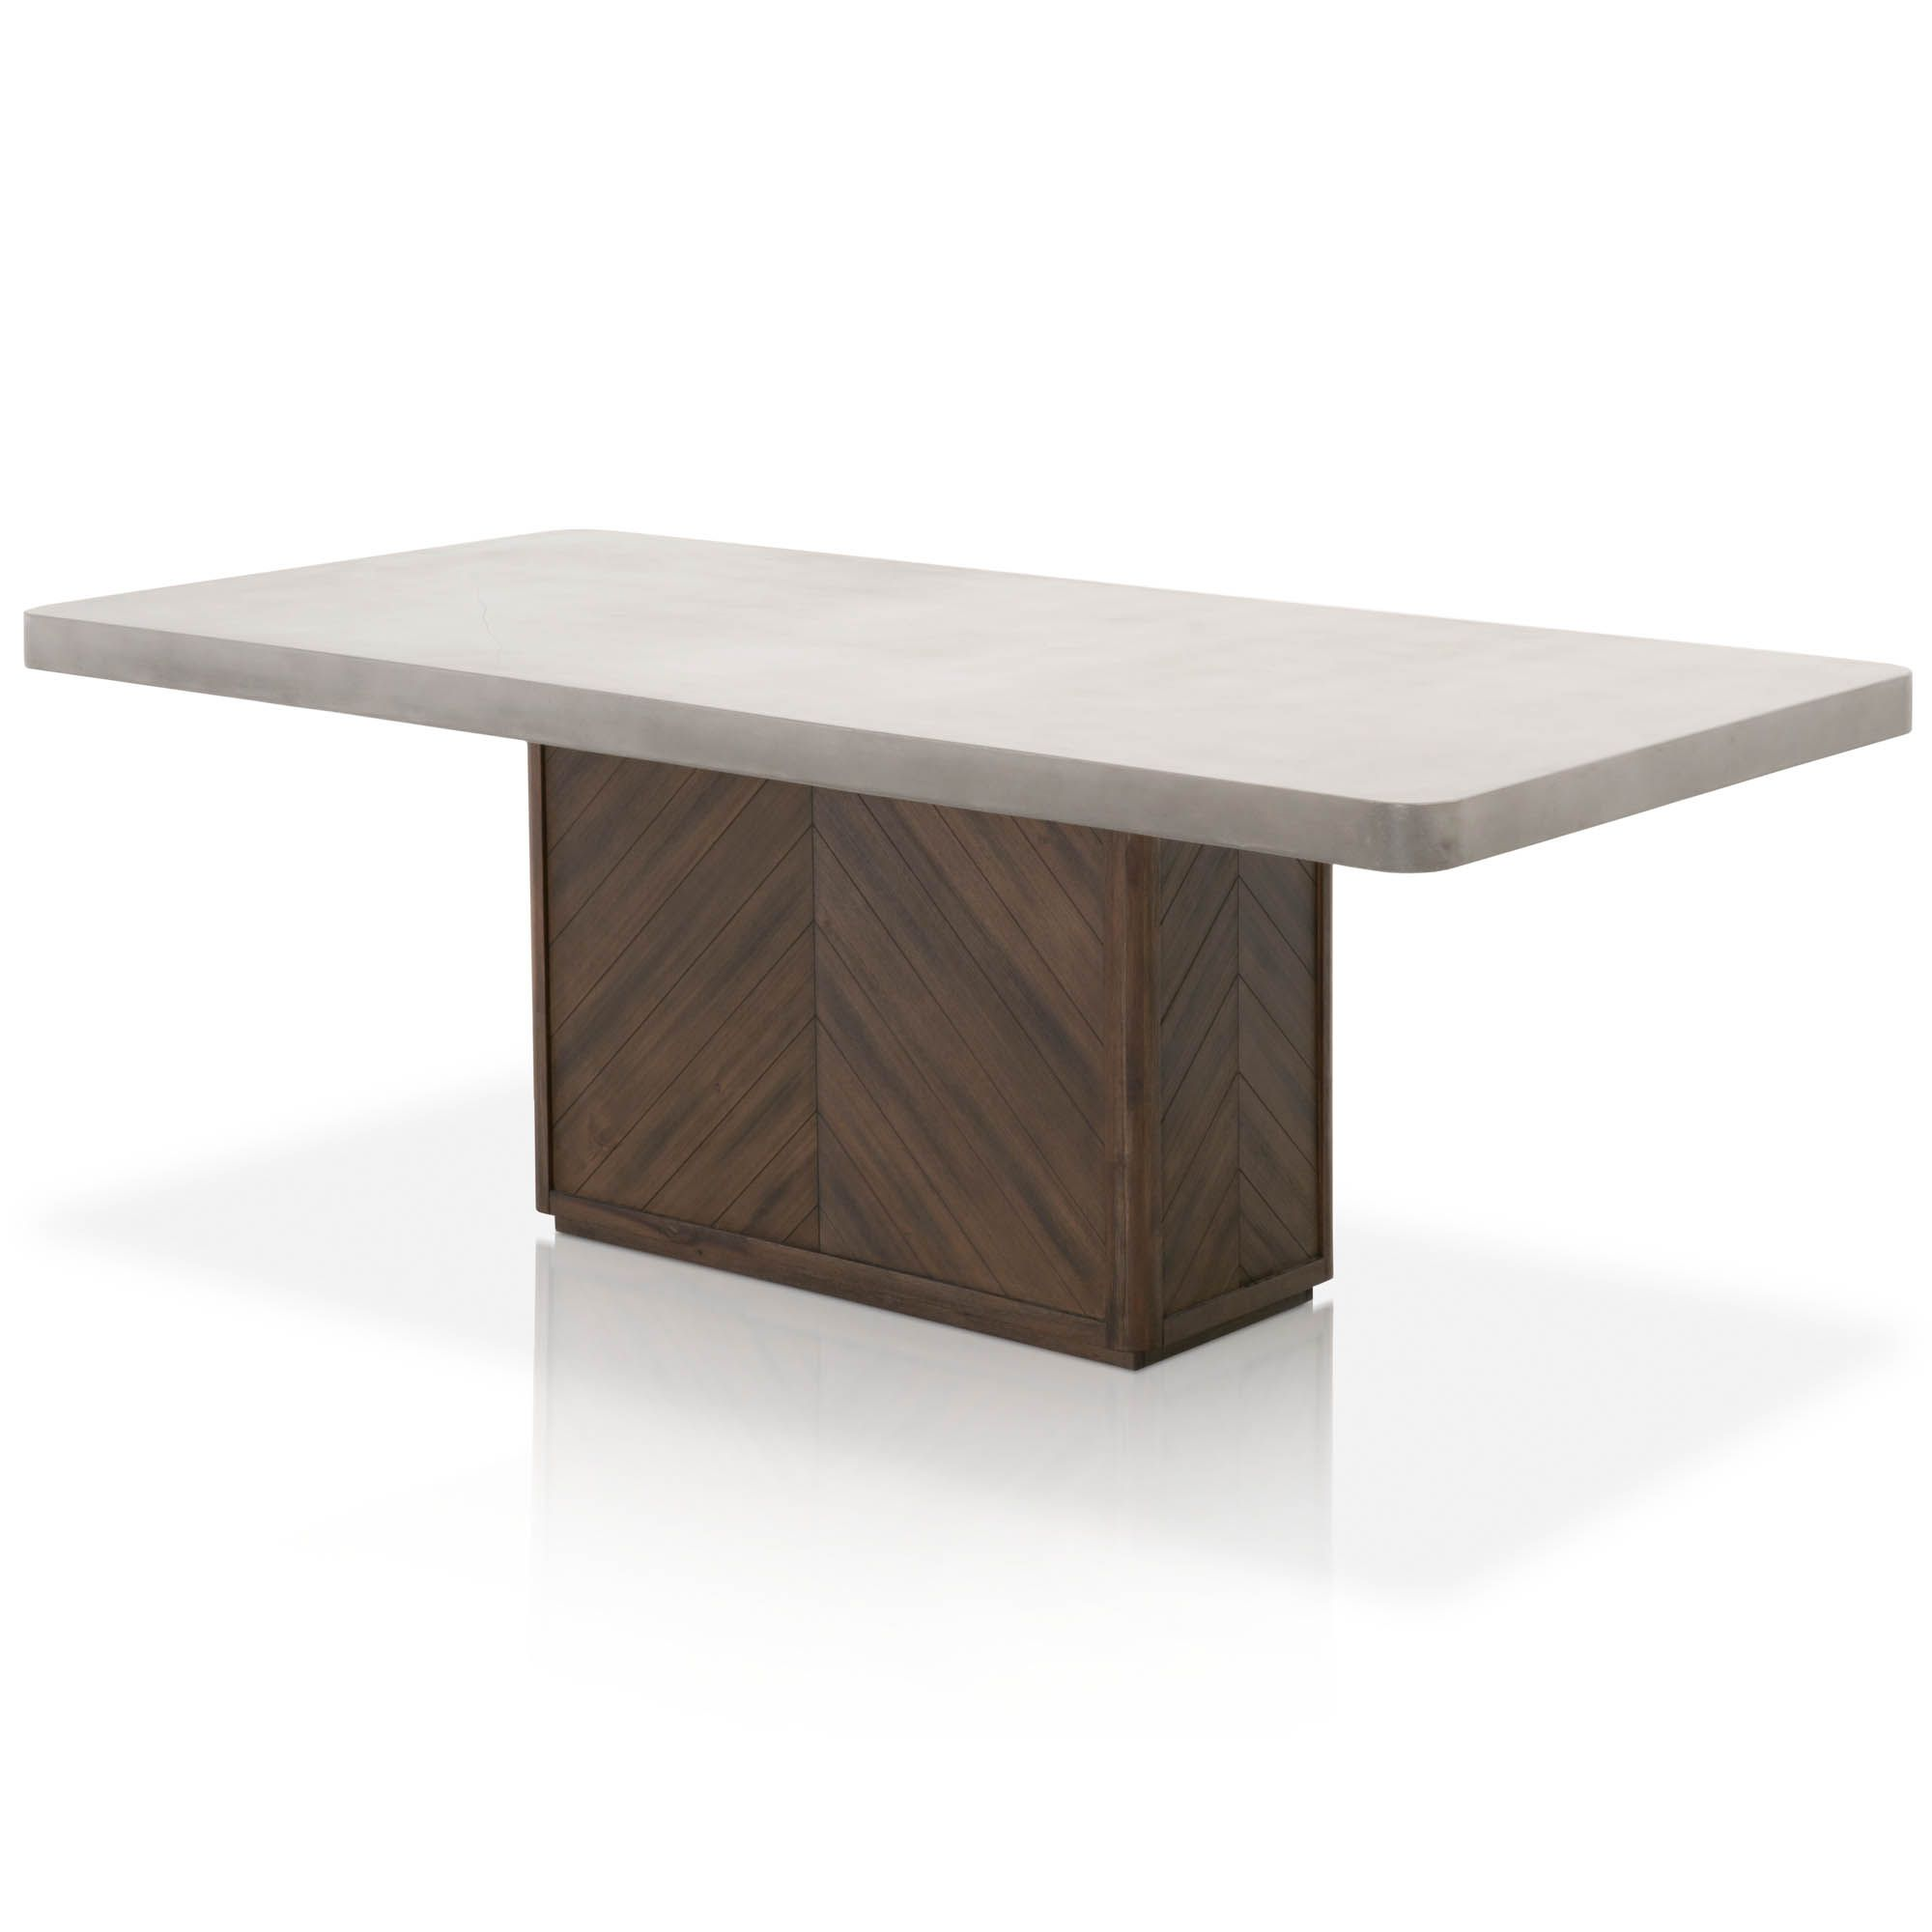 Apex Dining Table Furniture Dining Table Dining Table Dining